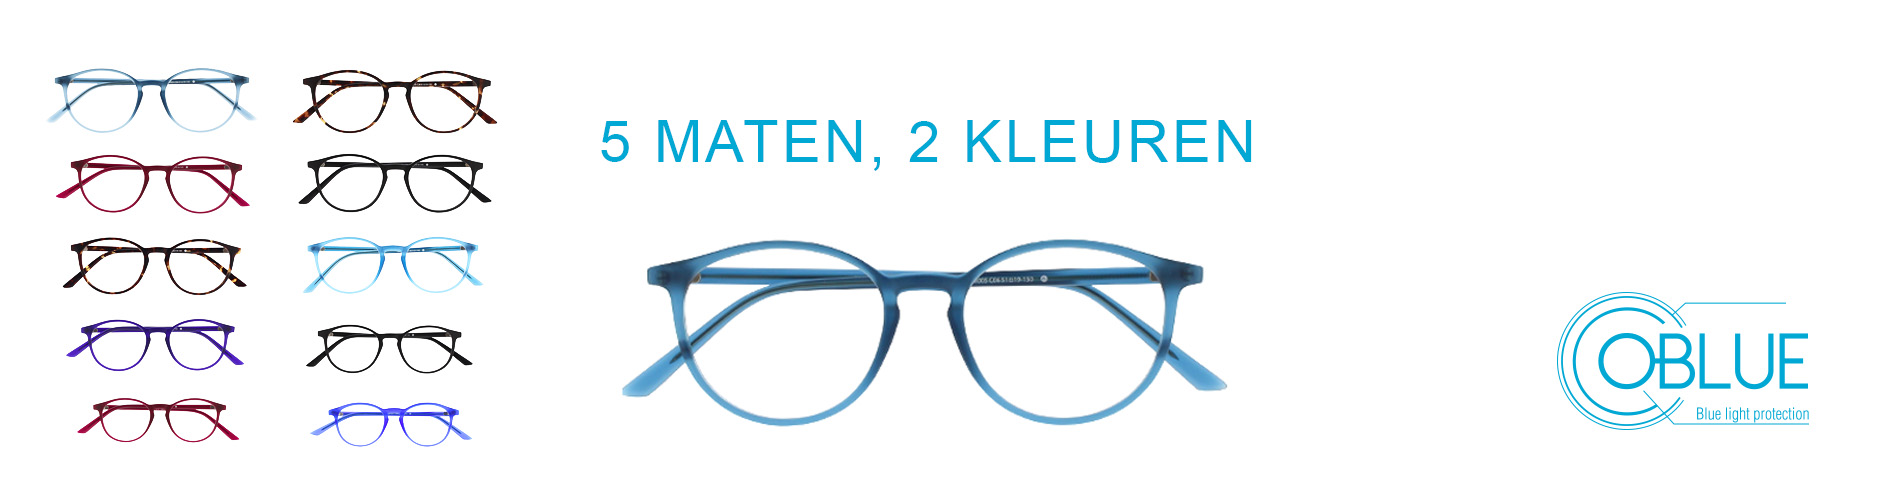 A-Concepts leverancier Blauwlicht brillen optiek